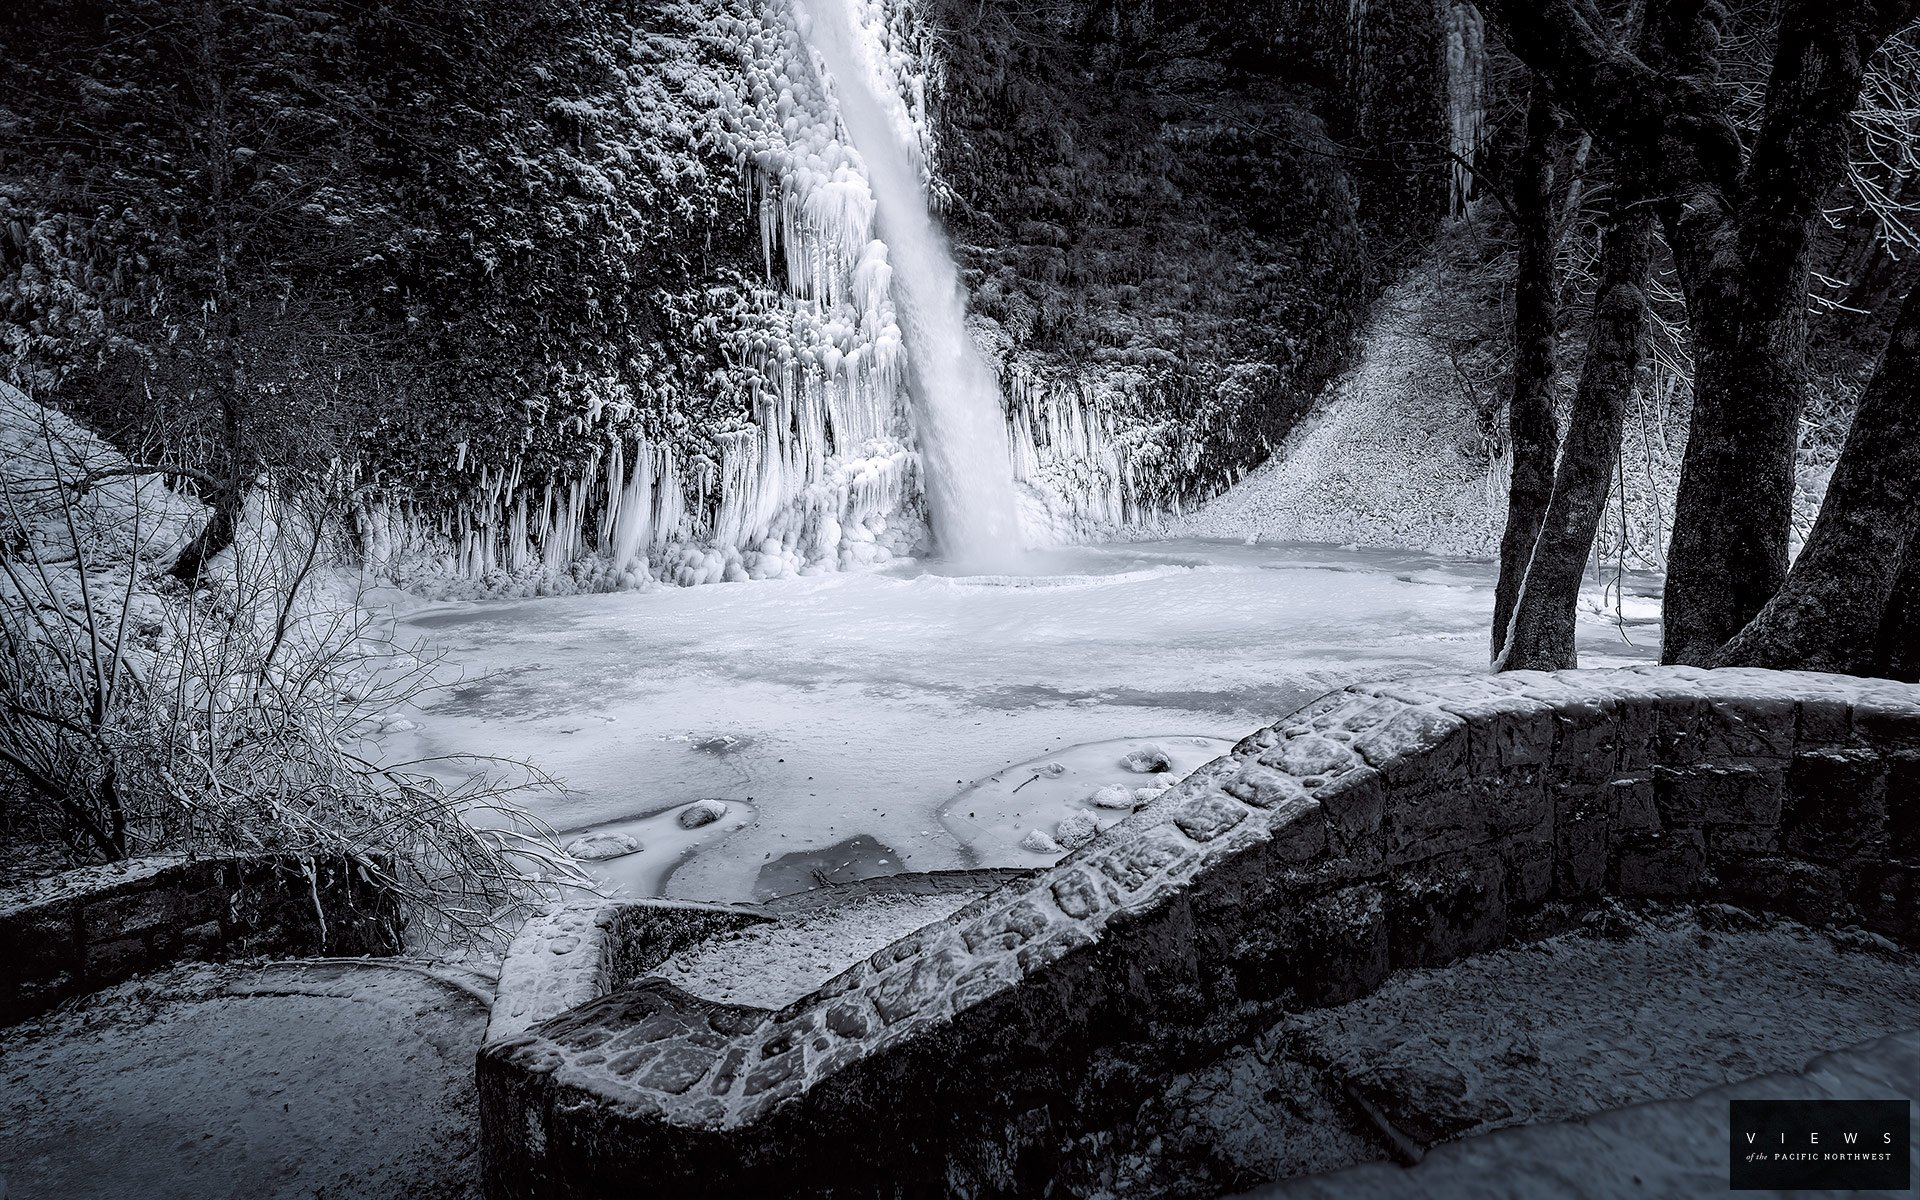 Waterfall BW Winter Snow wallpaper 1920x1200 197350 WallpaperUP 1920x1200